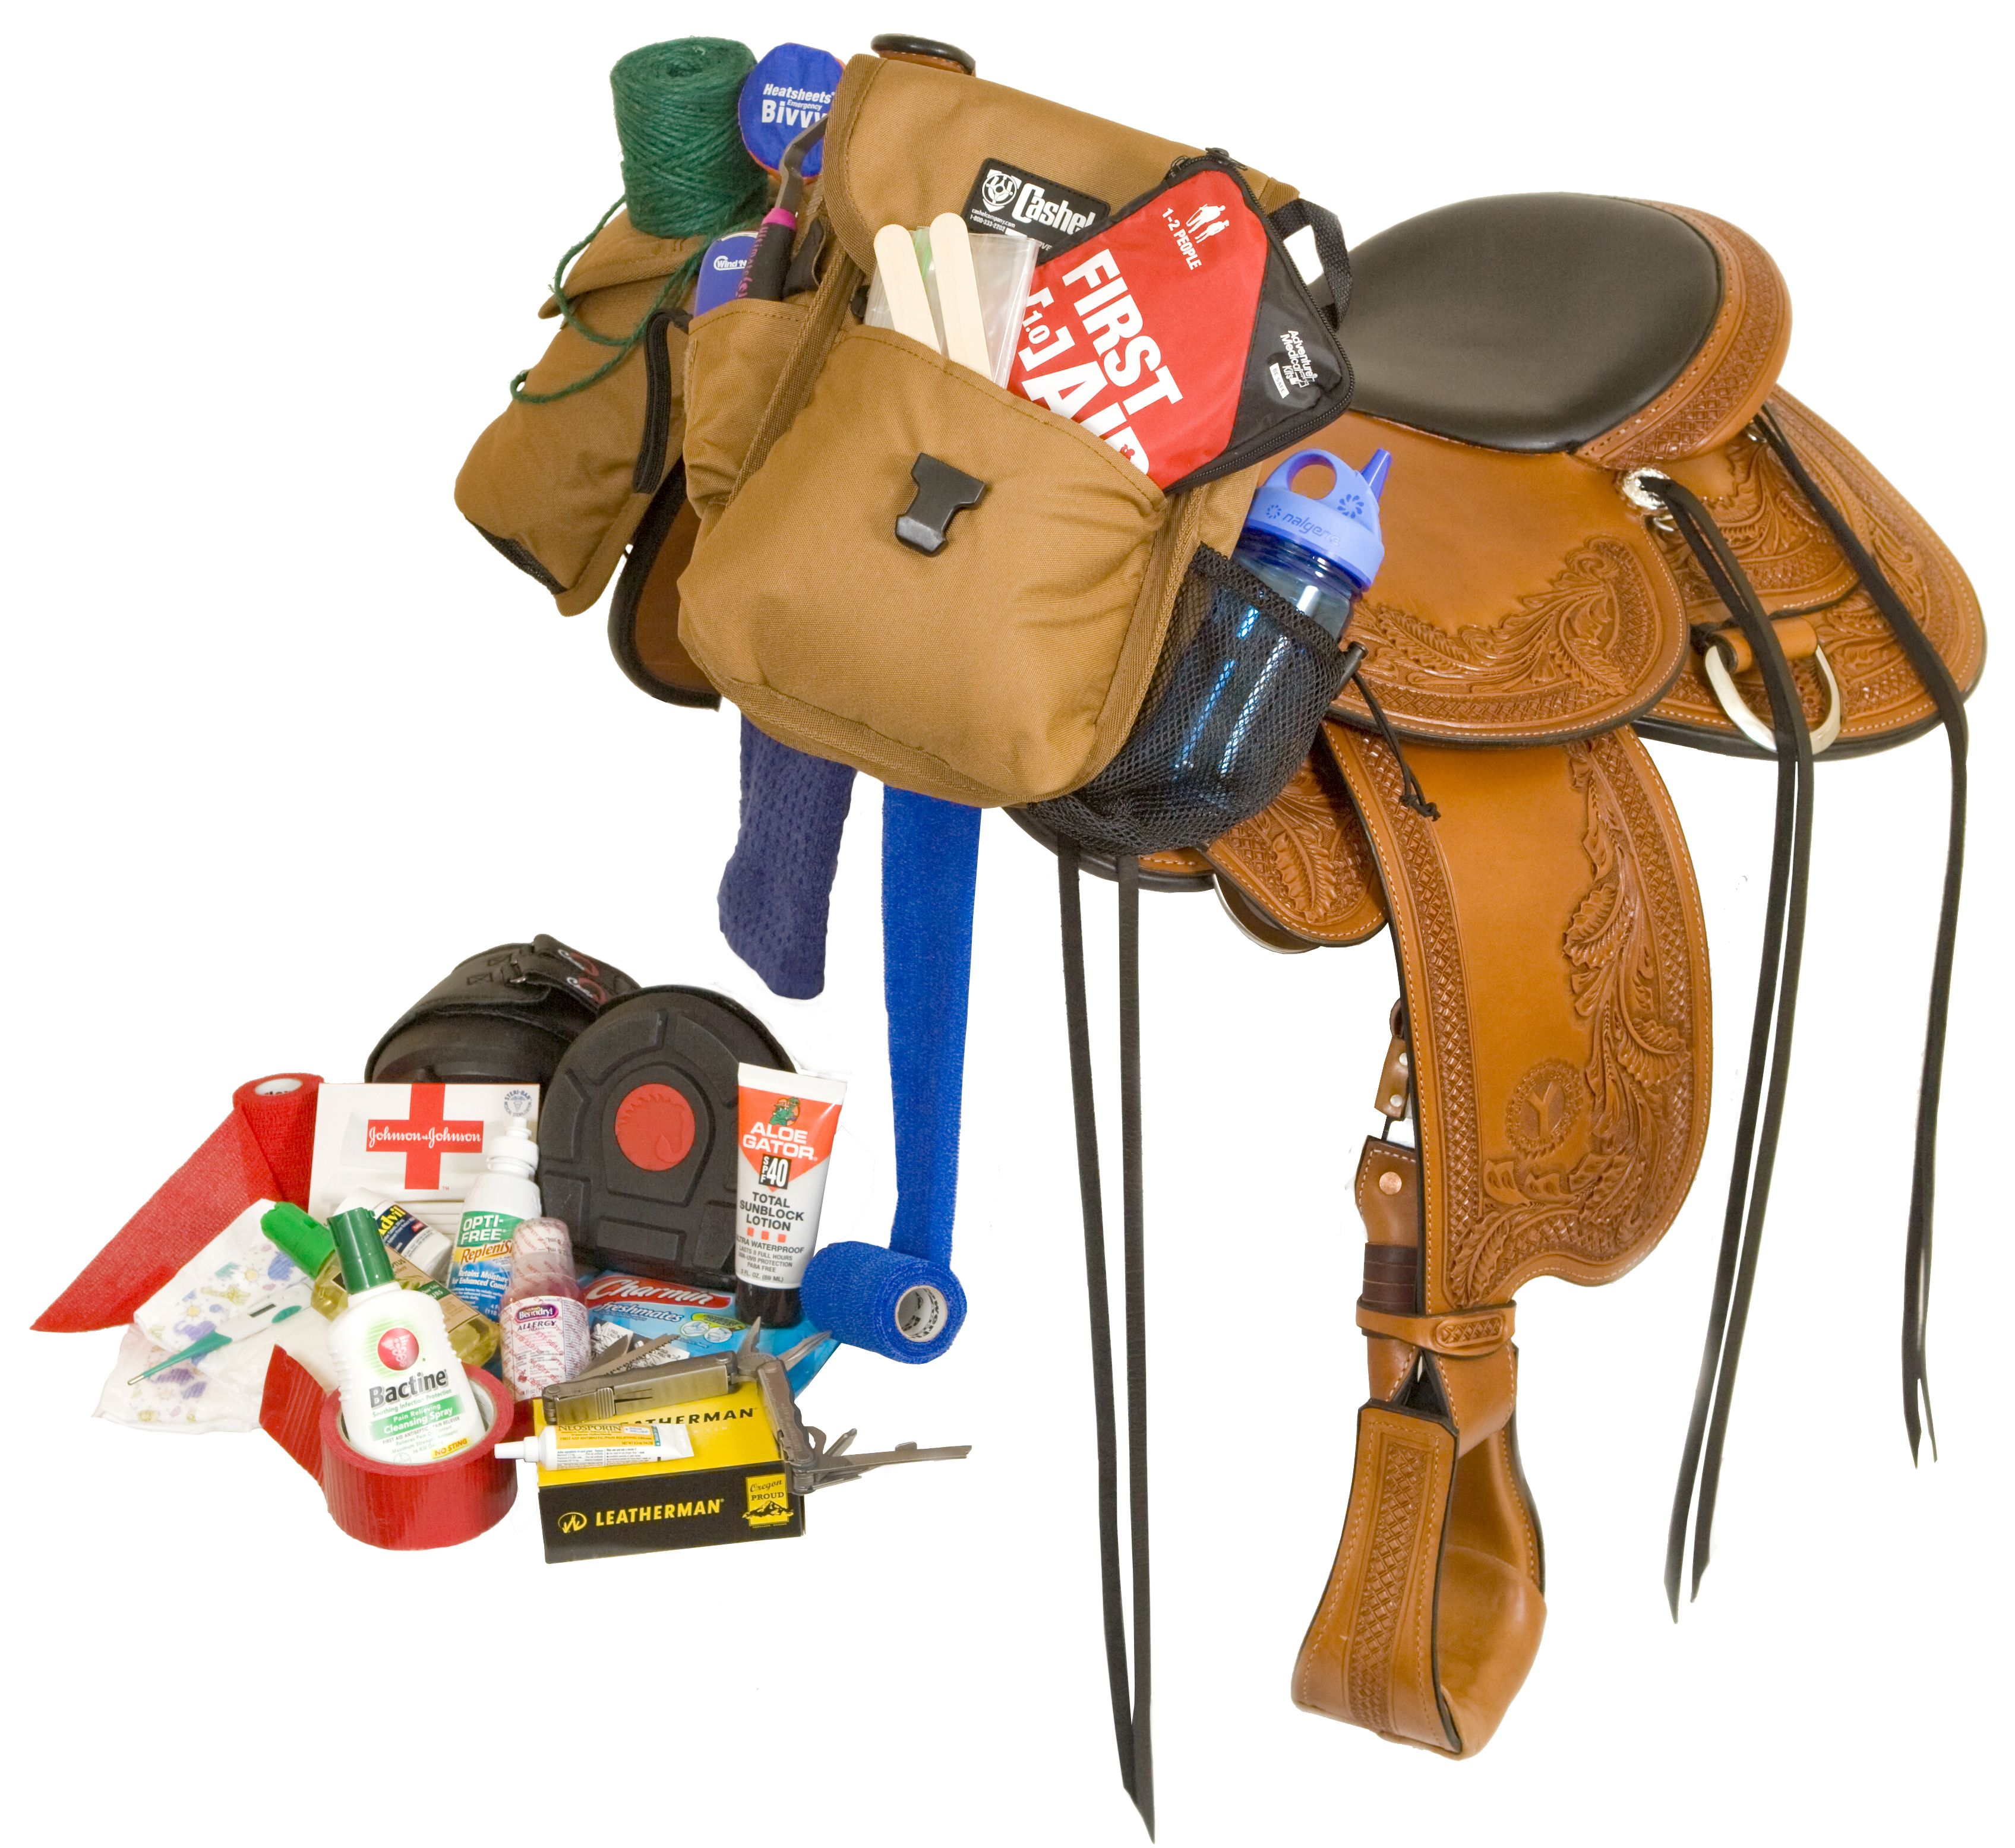 Excellent reference of items to carry/pack on horseback riding adventures